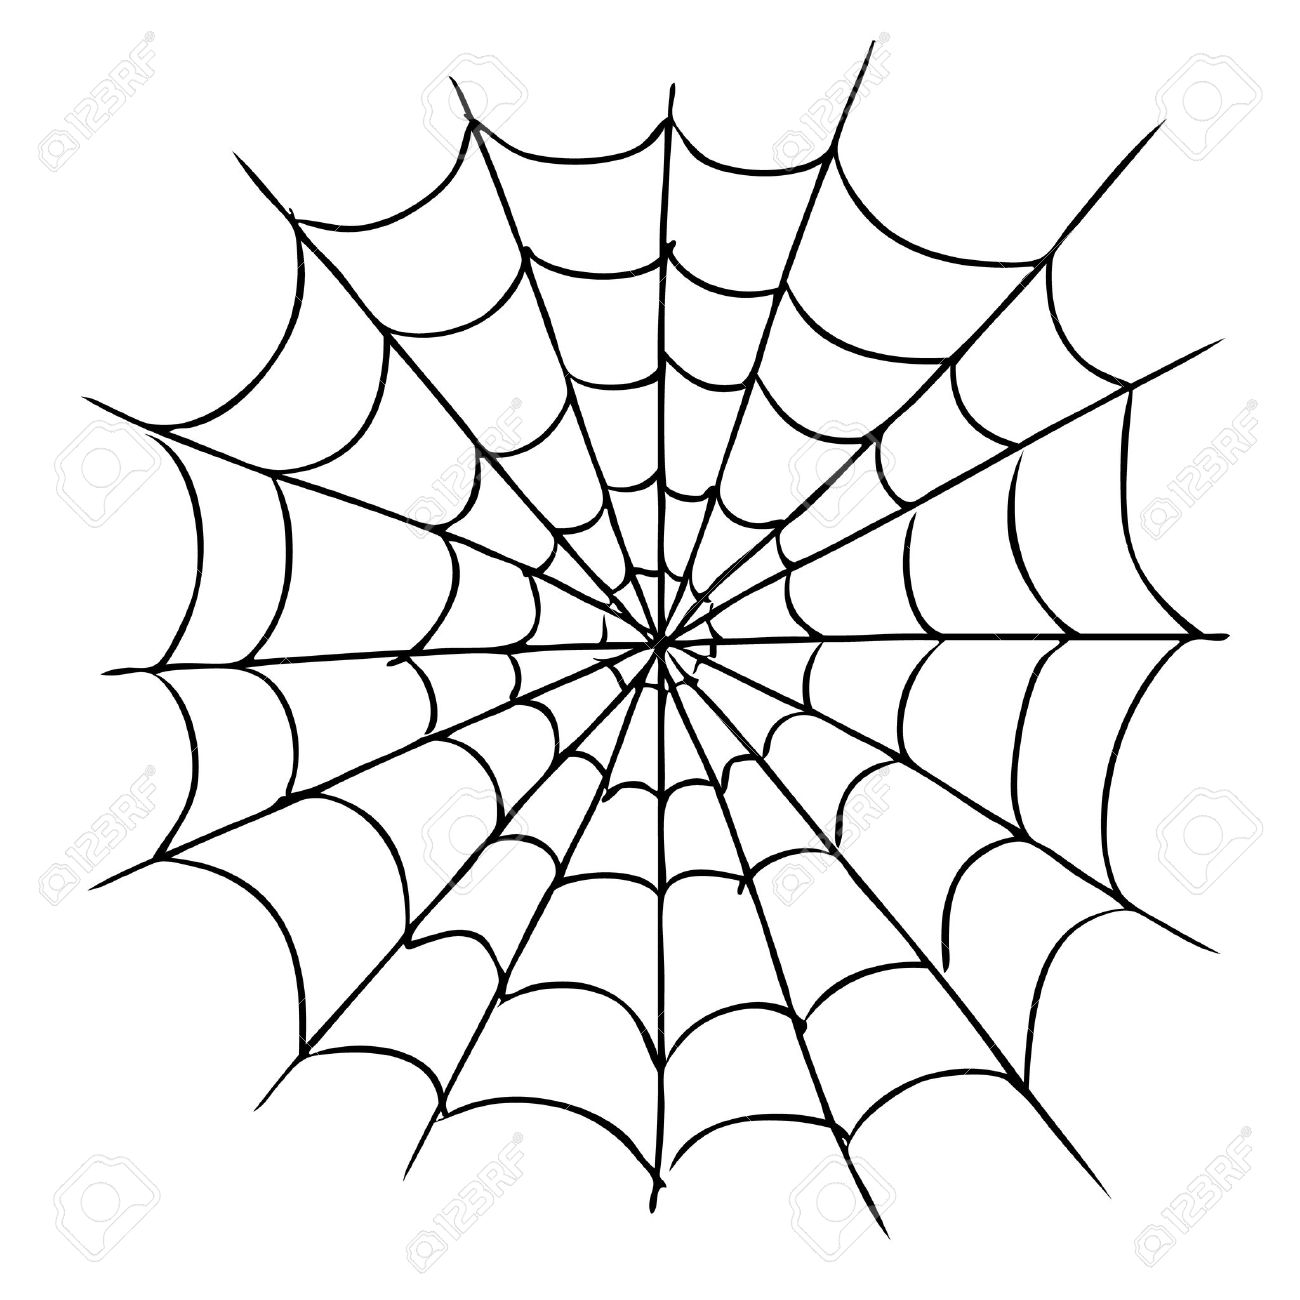 1300x1300 Freehand Sketch Illustration Of Spider Web, Doodle Hand Drawn